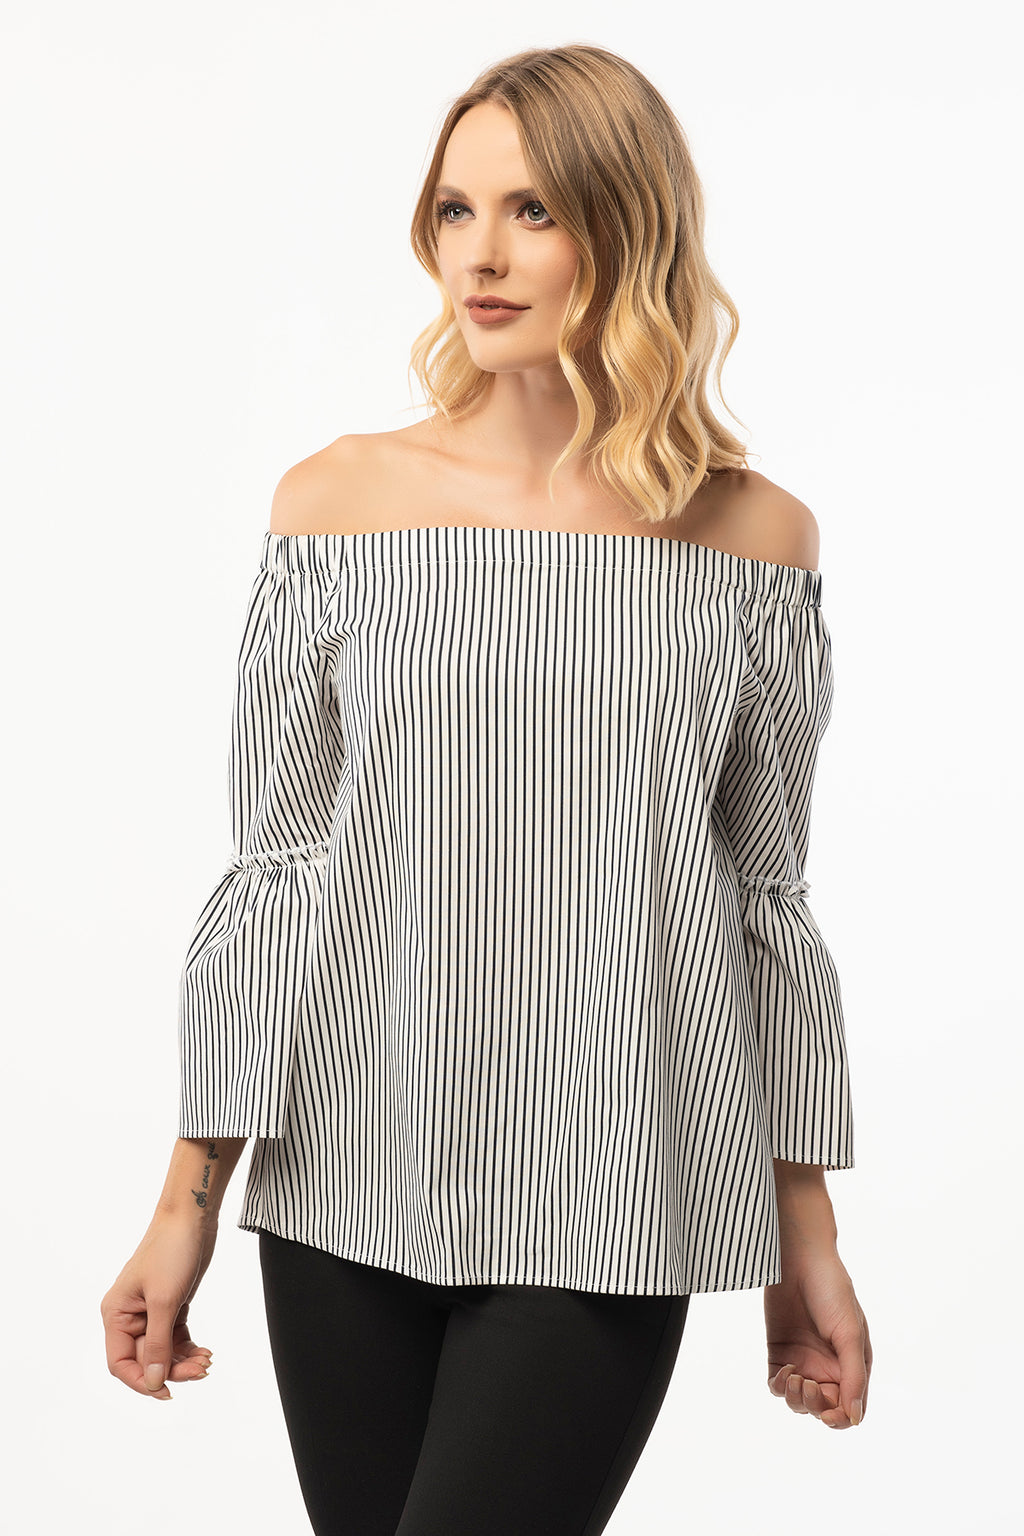 Strapless Black Striped Blouse - 3/4 Bell Sleeve